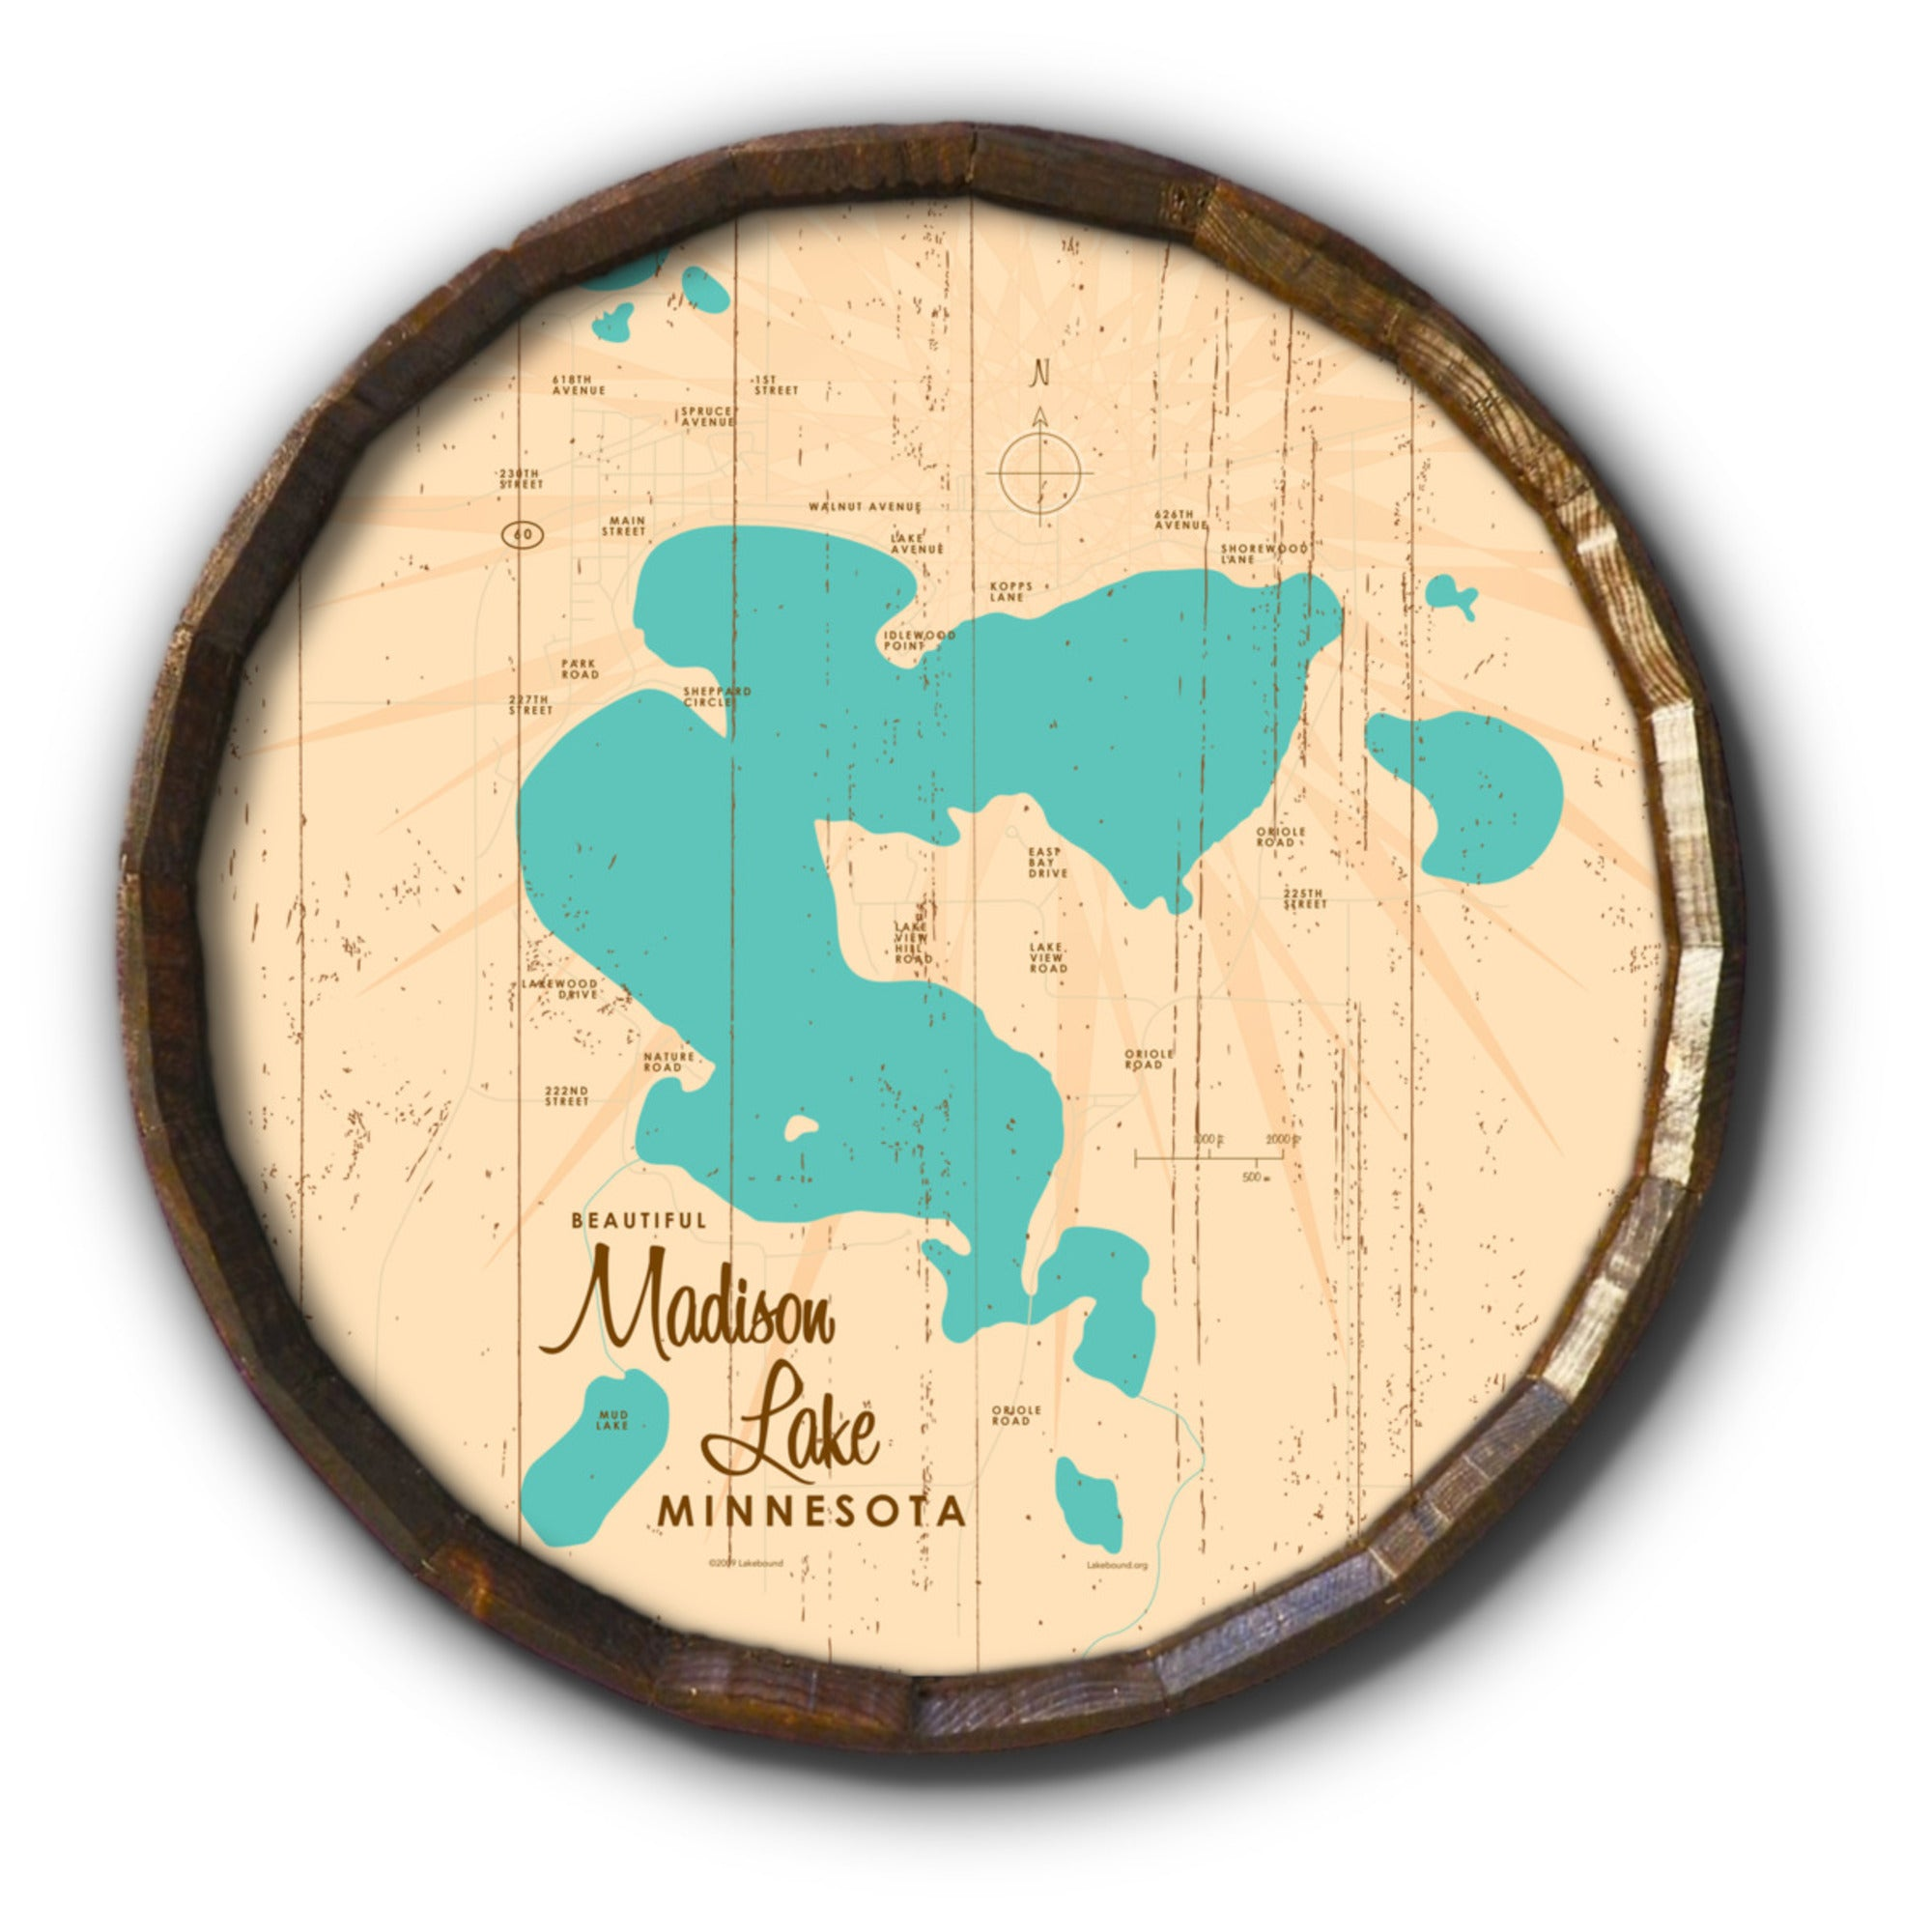 Madison Lake Minnesota, Rustic Barrel End Map Art